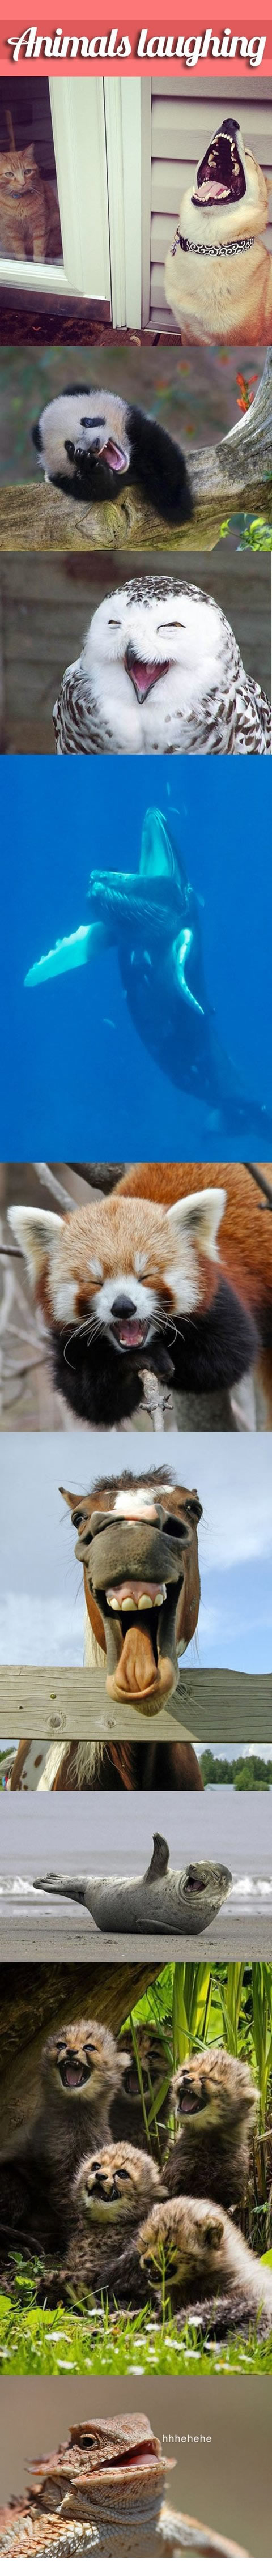 Adorable Animals Laughing.